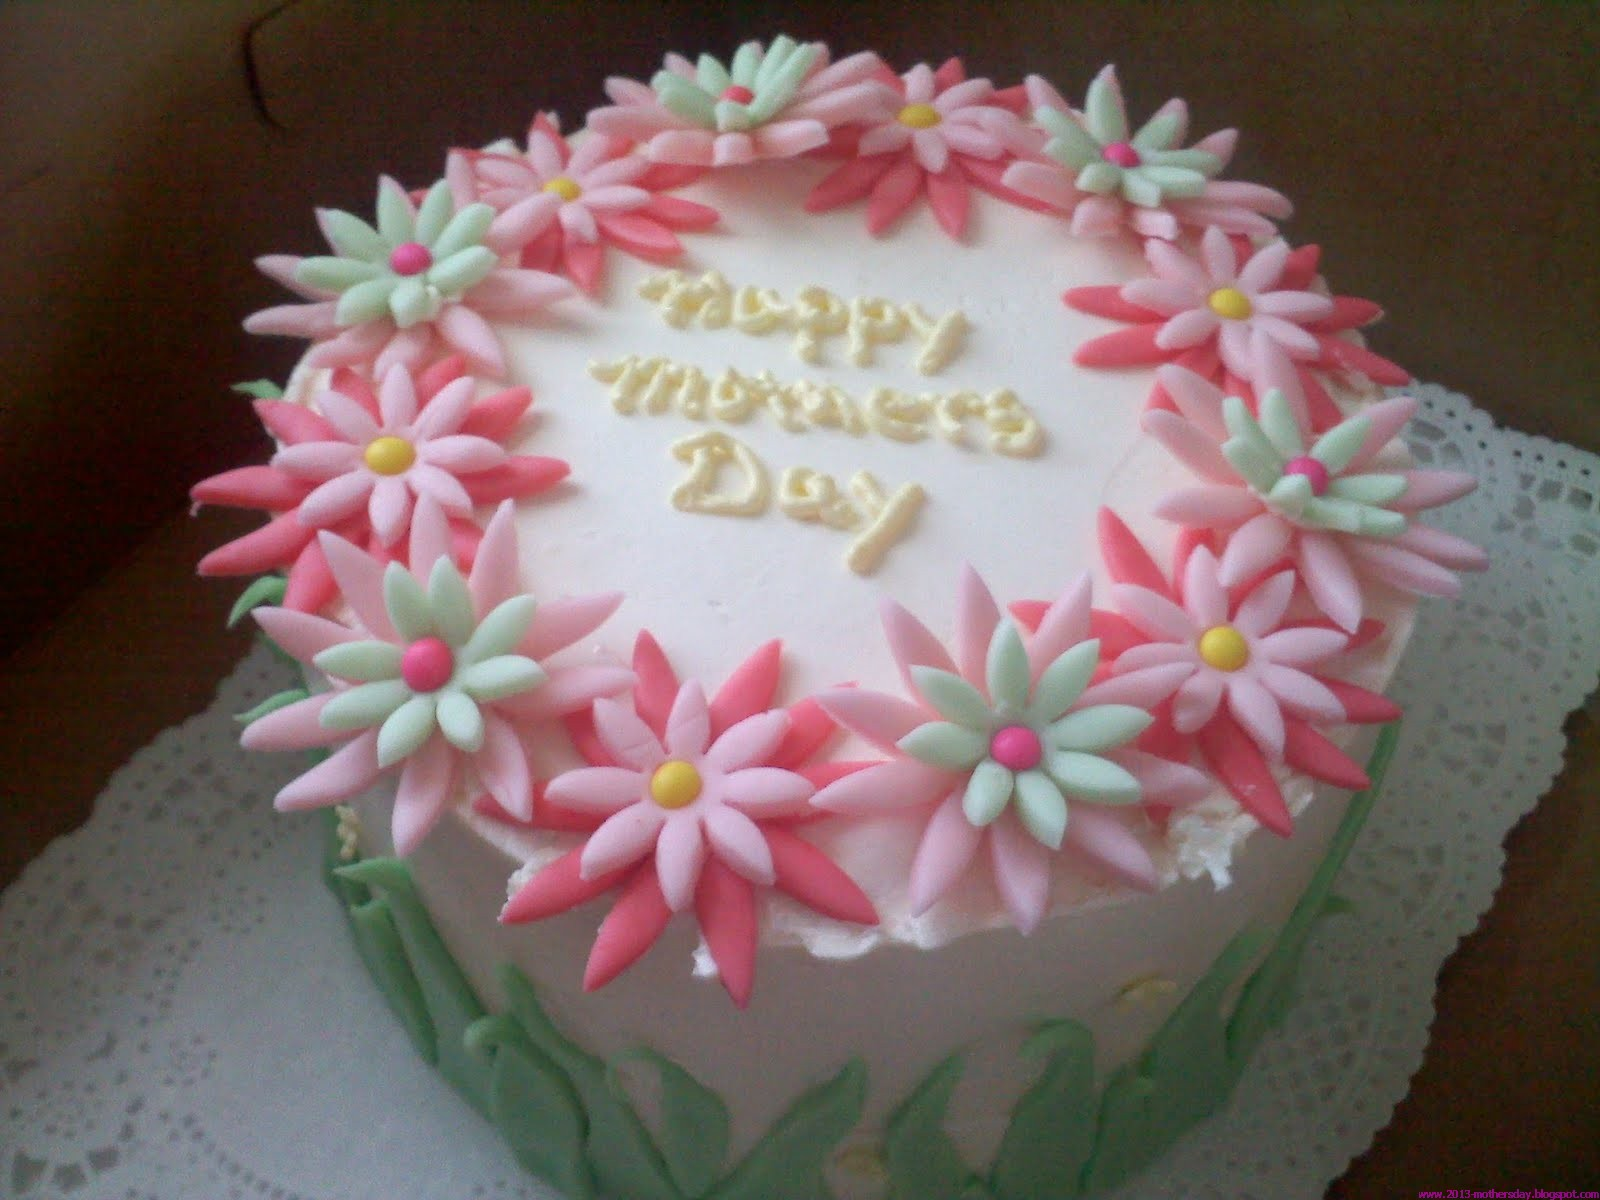 Cake Design For Mother : Wallpaper Free Download: Mothers day cake Decoration And ...